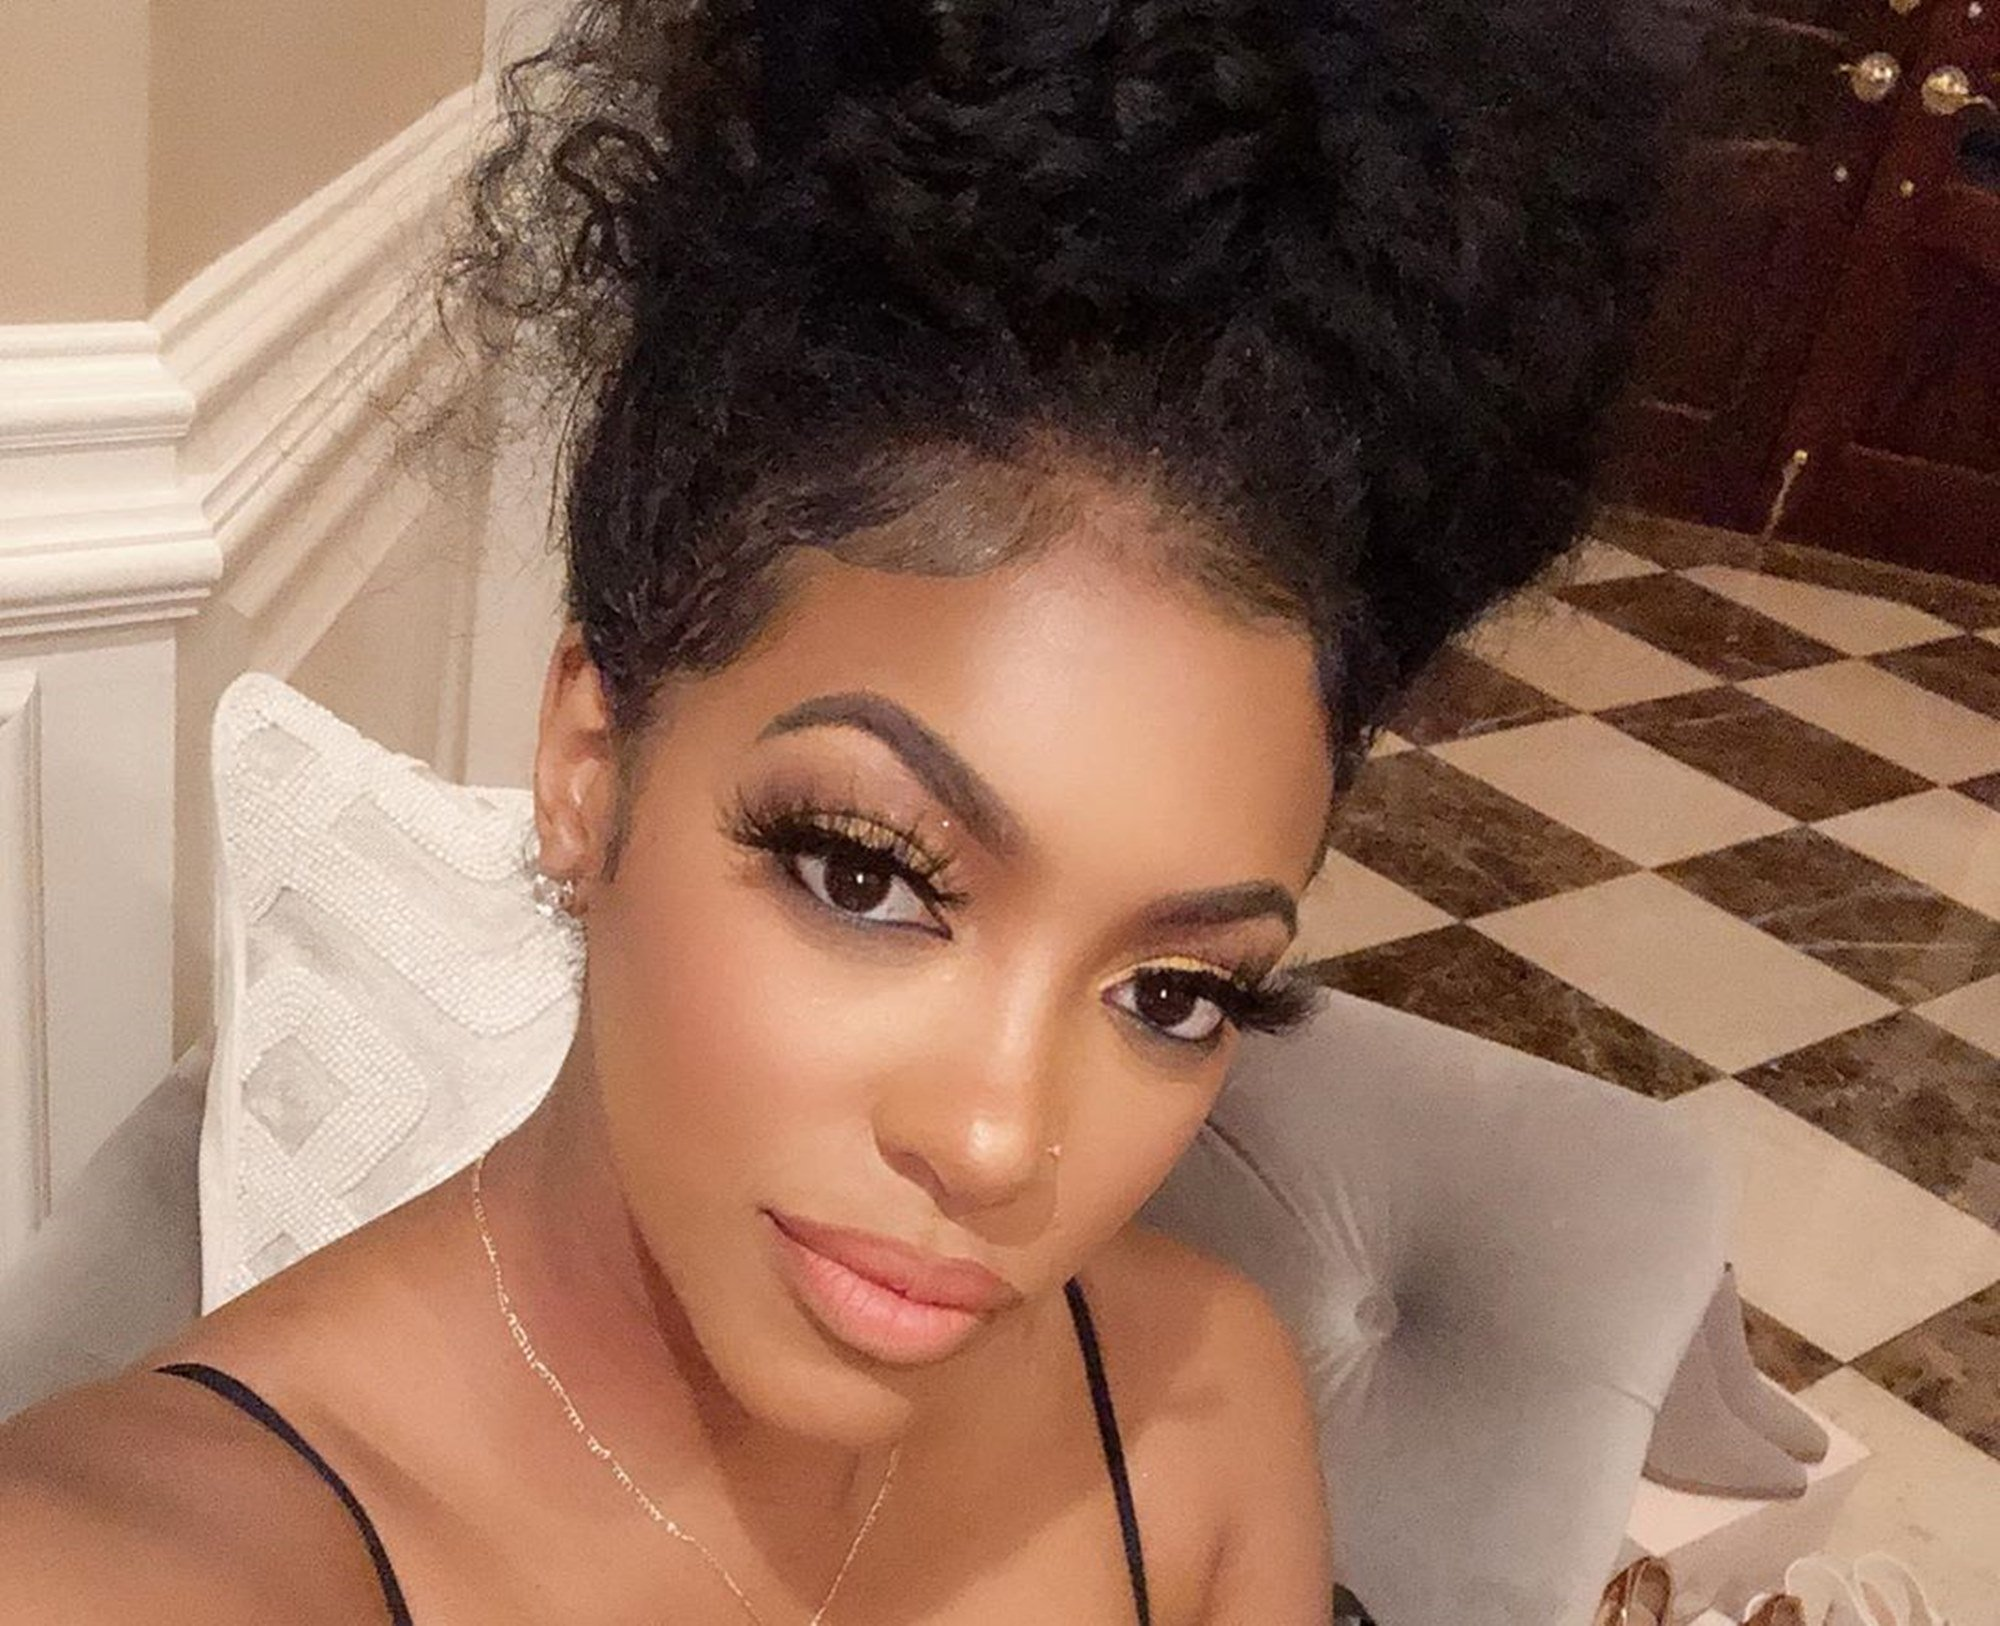 Porsha Williams Flaunts Her Curves In A Black Skin-Tight Dress - See Her Recent Photo Session